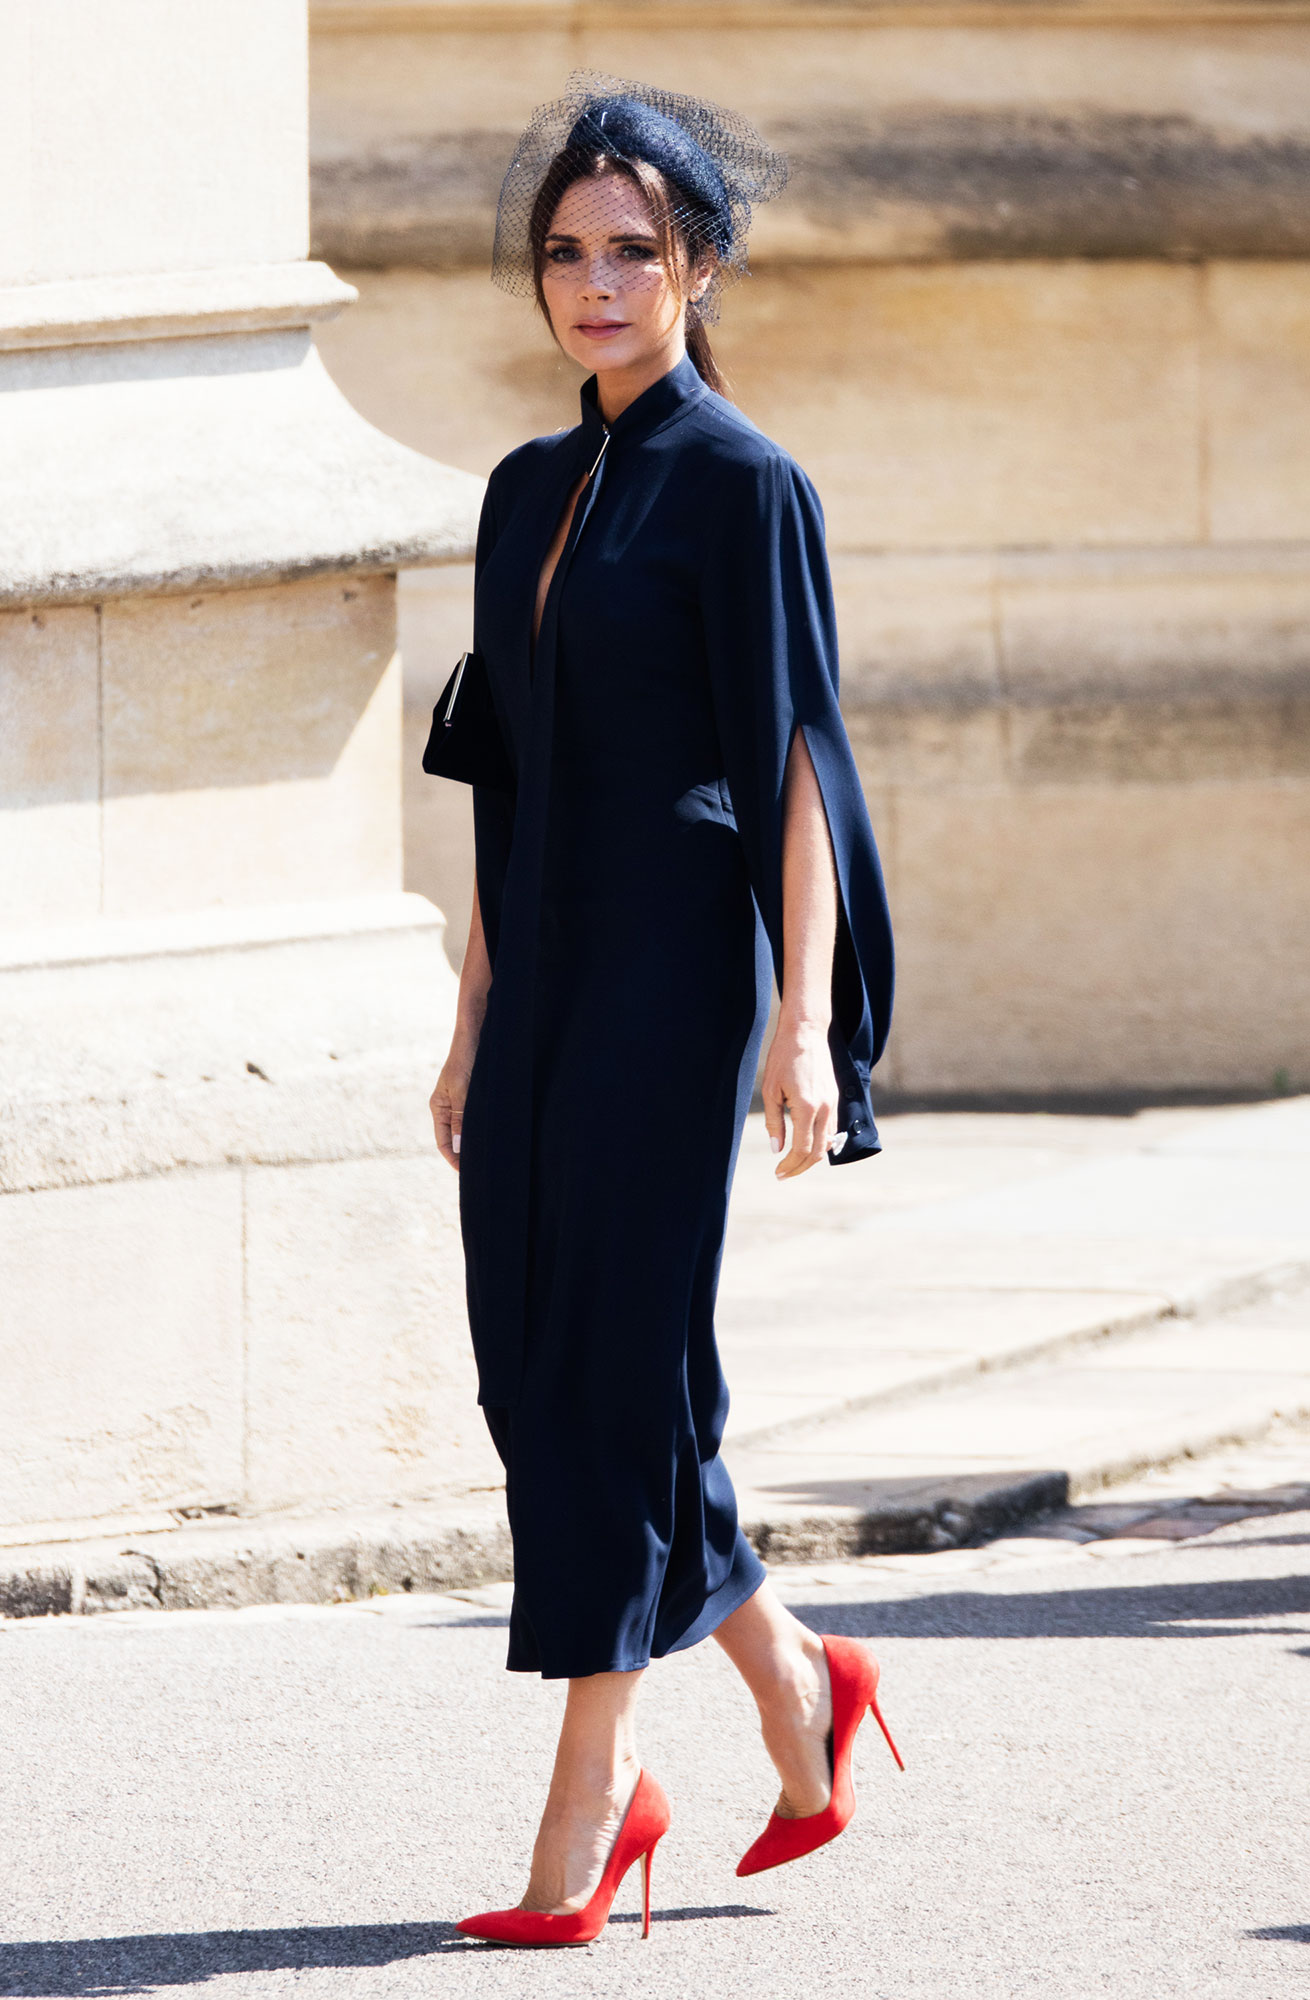 Victoria Beckham royal wedding orince harry meghan markle - The mom-of-four provided a bit of a #TBT moment in her navy blue Victoria Beckham mididress at Prince Harry and Meghan Markle's royal wedding on May 19, 2018. It was the same color she wore to watch Will and Kate tie the knot back in the 2011!